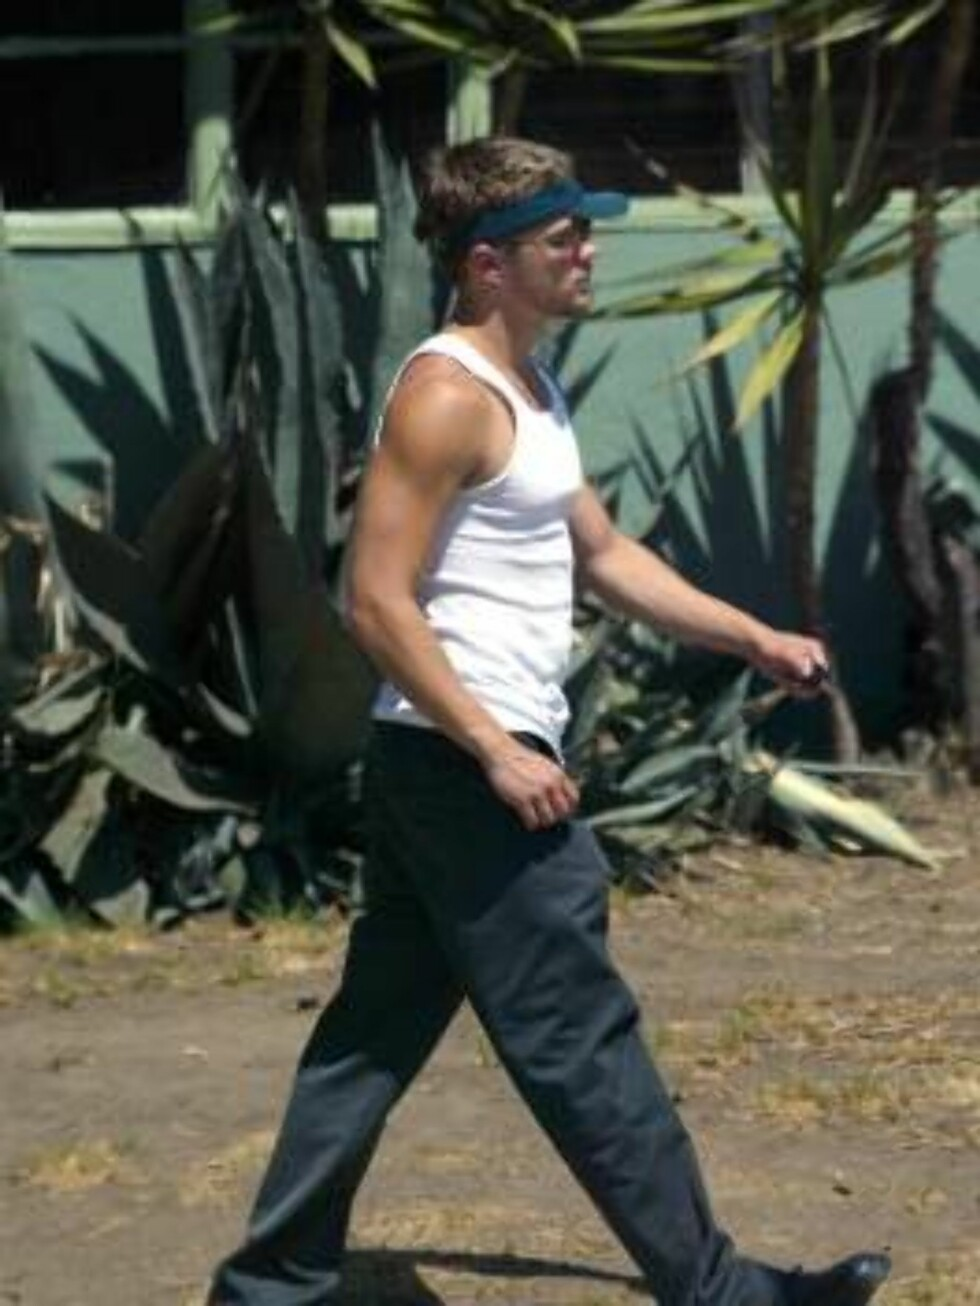 LOS ANGELES 020911 - Ryan Phillippe walking in Hollywood with a new beard.   PHOTO: Fame Pictures Code: 4002  COPYRIGHT STELLA PICTURES Foto: Stella Pictures